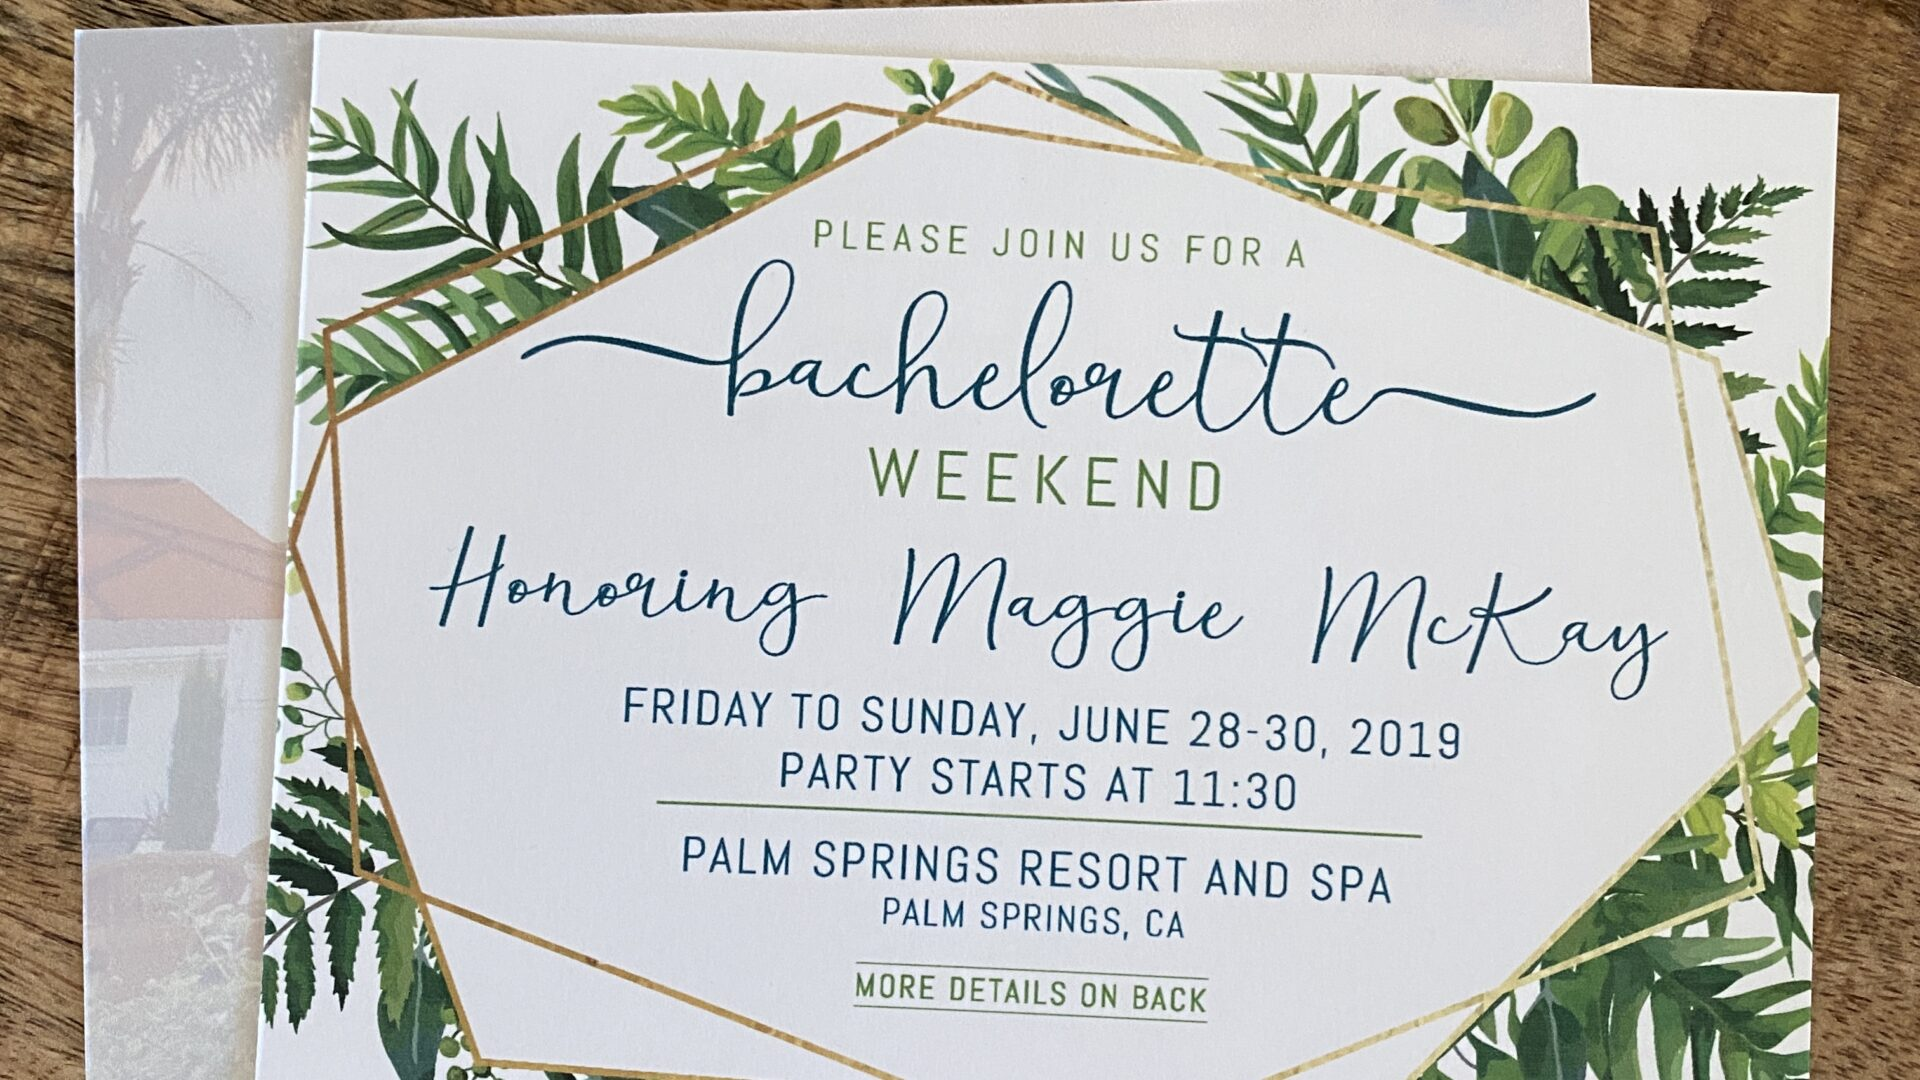 Bachelorette Weekend Invitations and Weekend Events